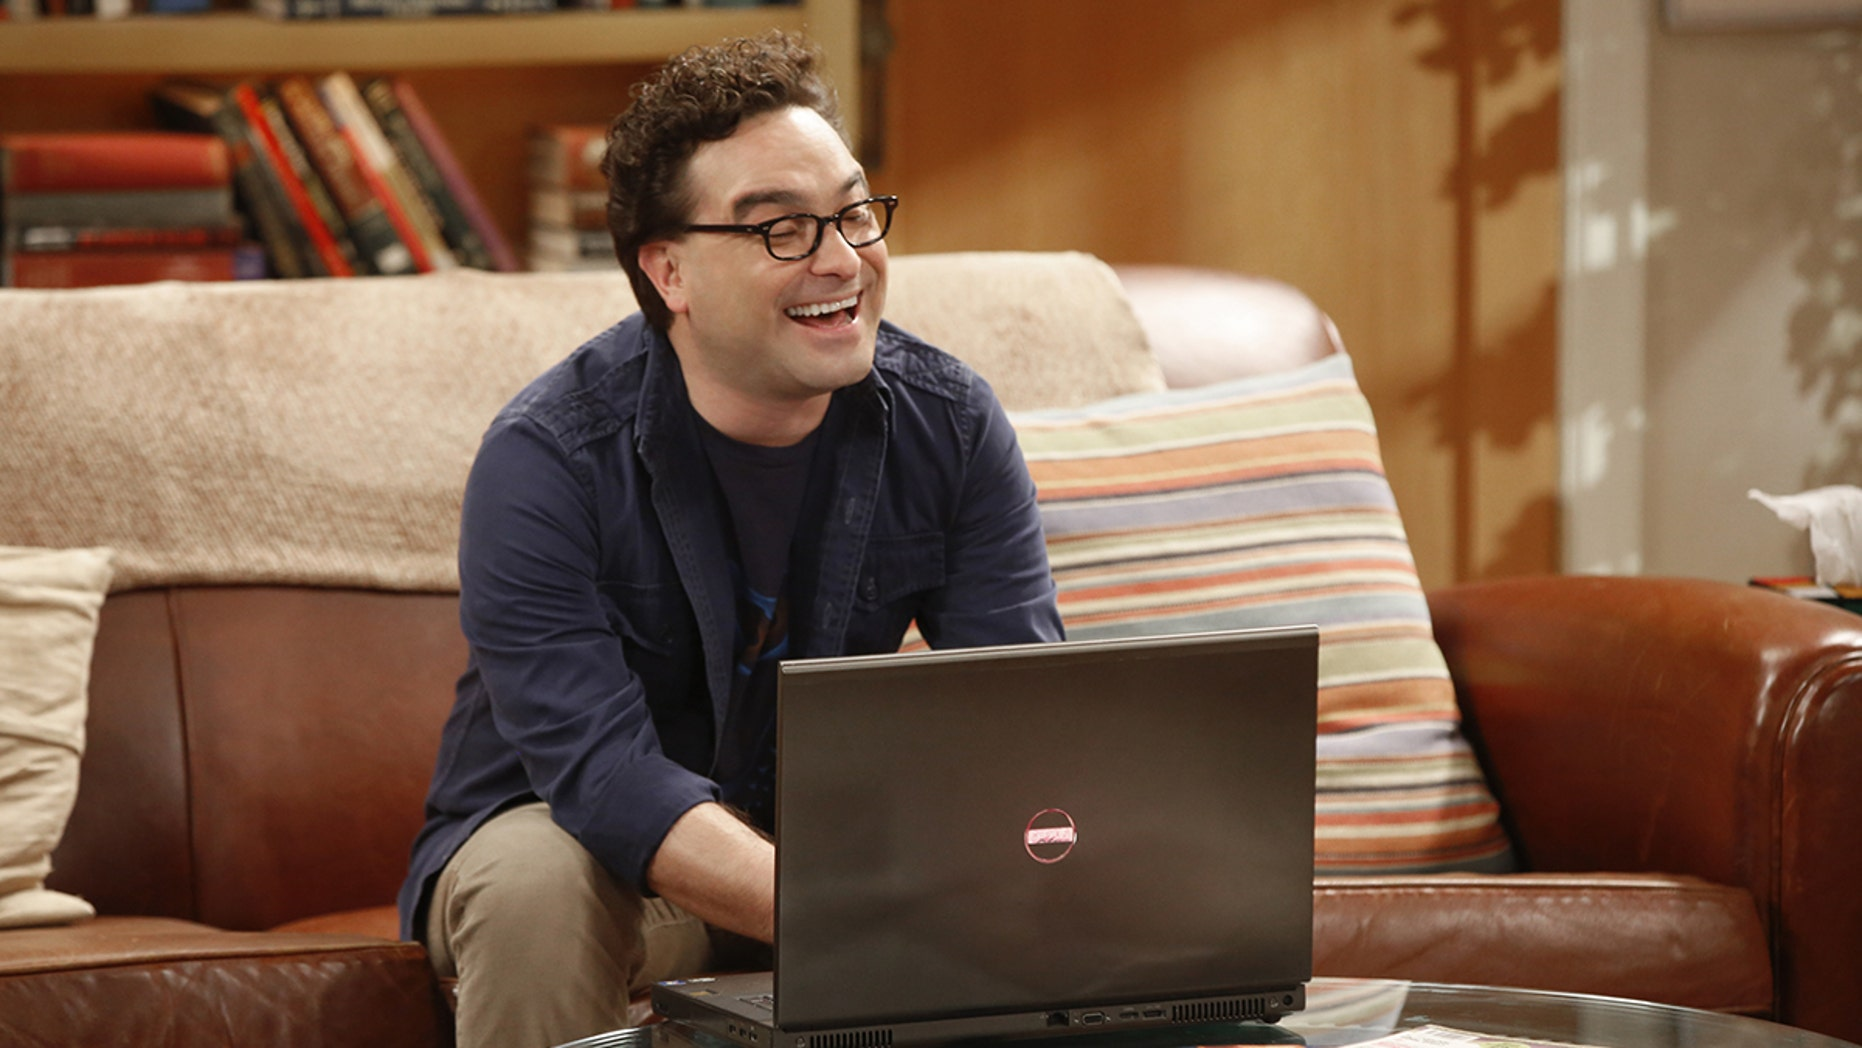 """The Explosion Implosion"" - Pictured: Leonard Hofstadter (Johnny Galecki). Howard and Sheldon bond when they drive to the desert to shoot off a model rocket.   Also, when Leonard's mom, Beverly (Christine Baranski), finds a new best friend in Penny, it rubs Leonard the wrong way, on THE BIG BANG THEORY, Monday, Oct. 16 (8:00-8:31 PM, ET/PT), on the CBS Television Network. Photo: Monty Brinton/CBS ©2017 CBS Broadcasting, Inc. All Rights Reserved"